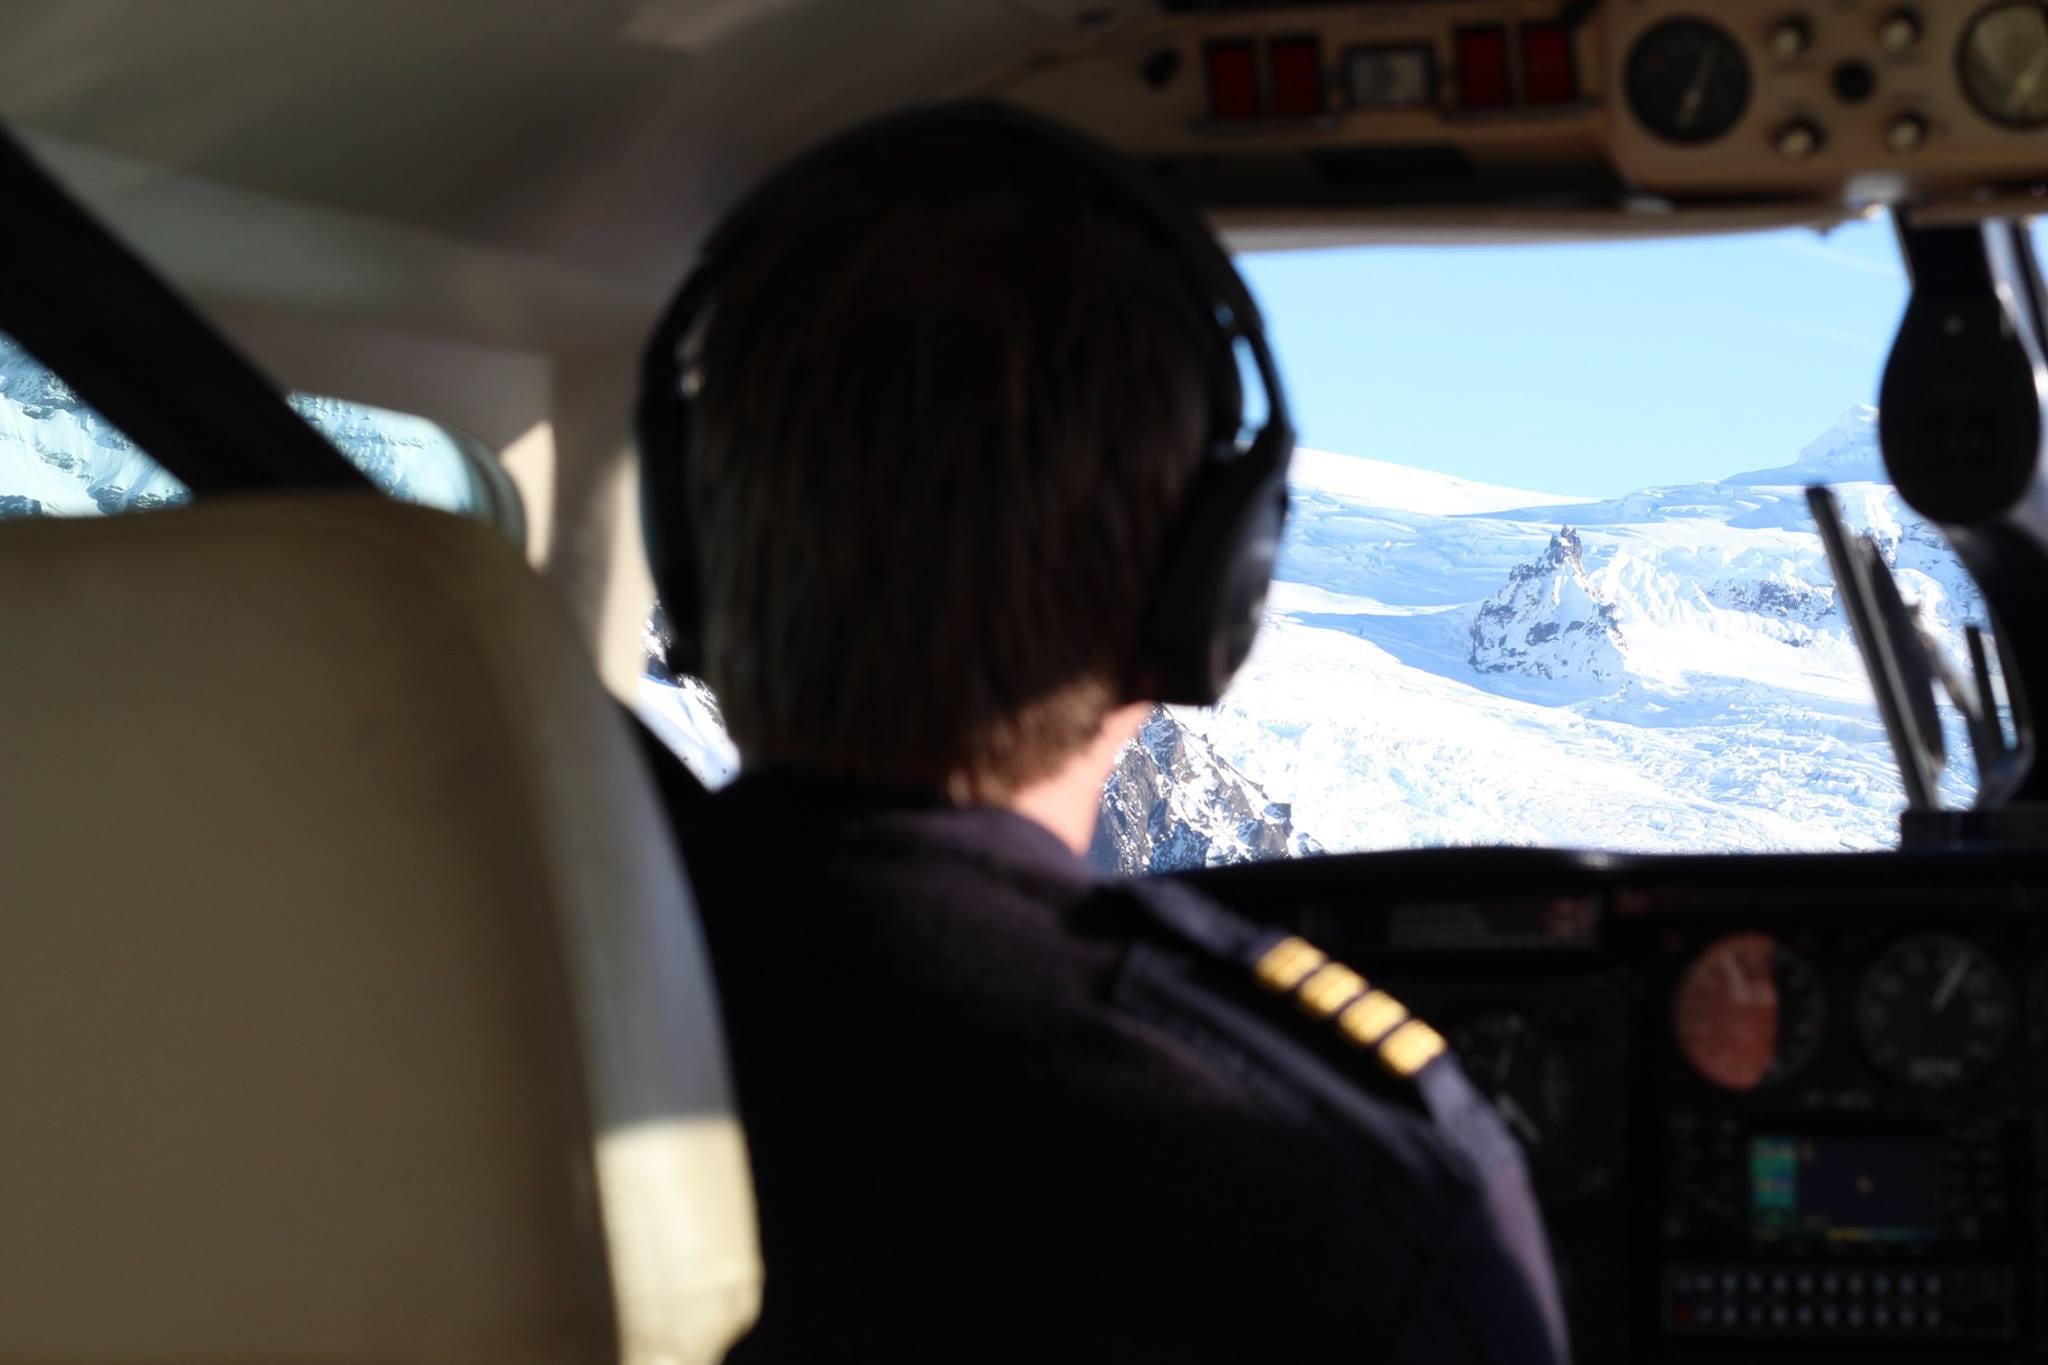 Your friendly and experienced pilot will be able to show you like Iceland like never before.